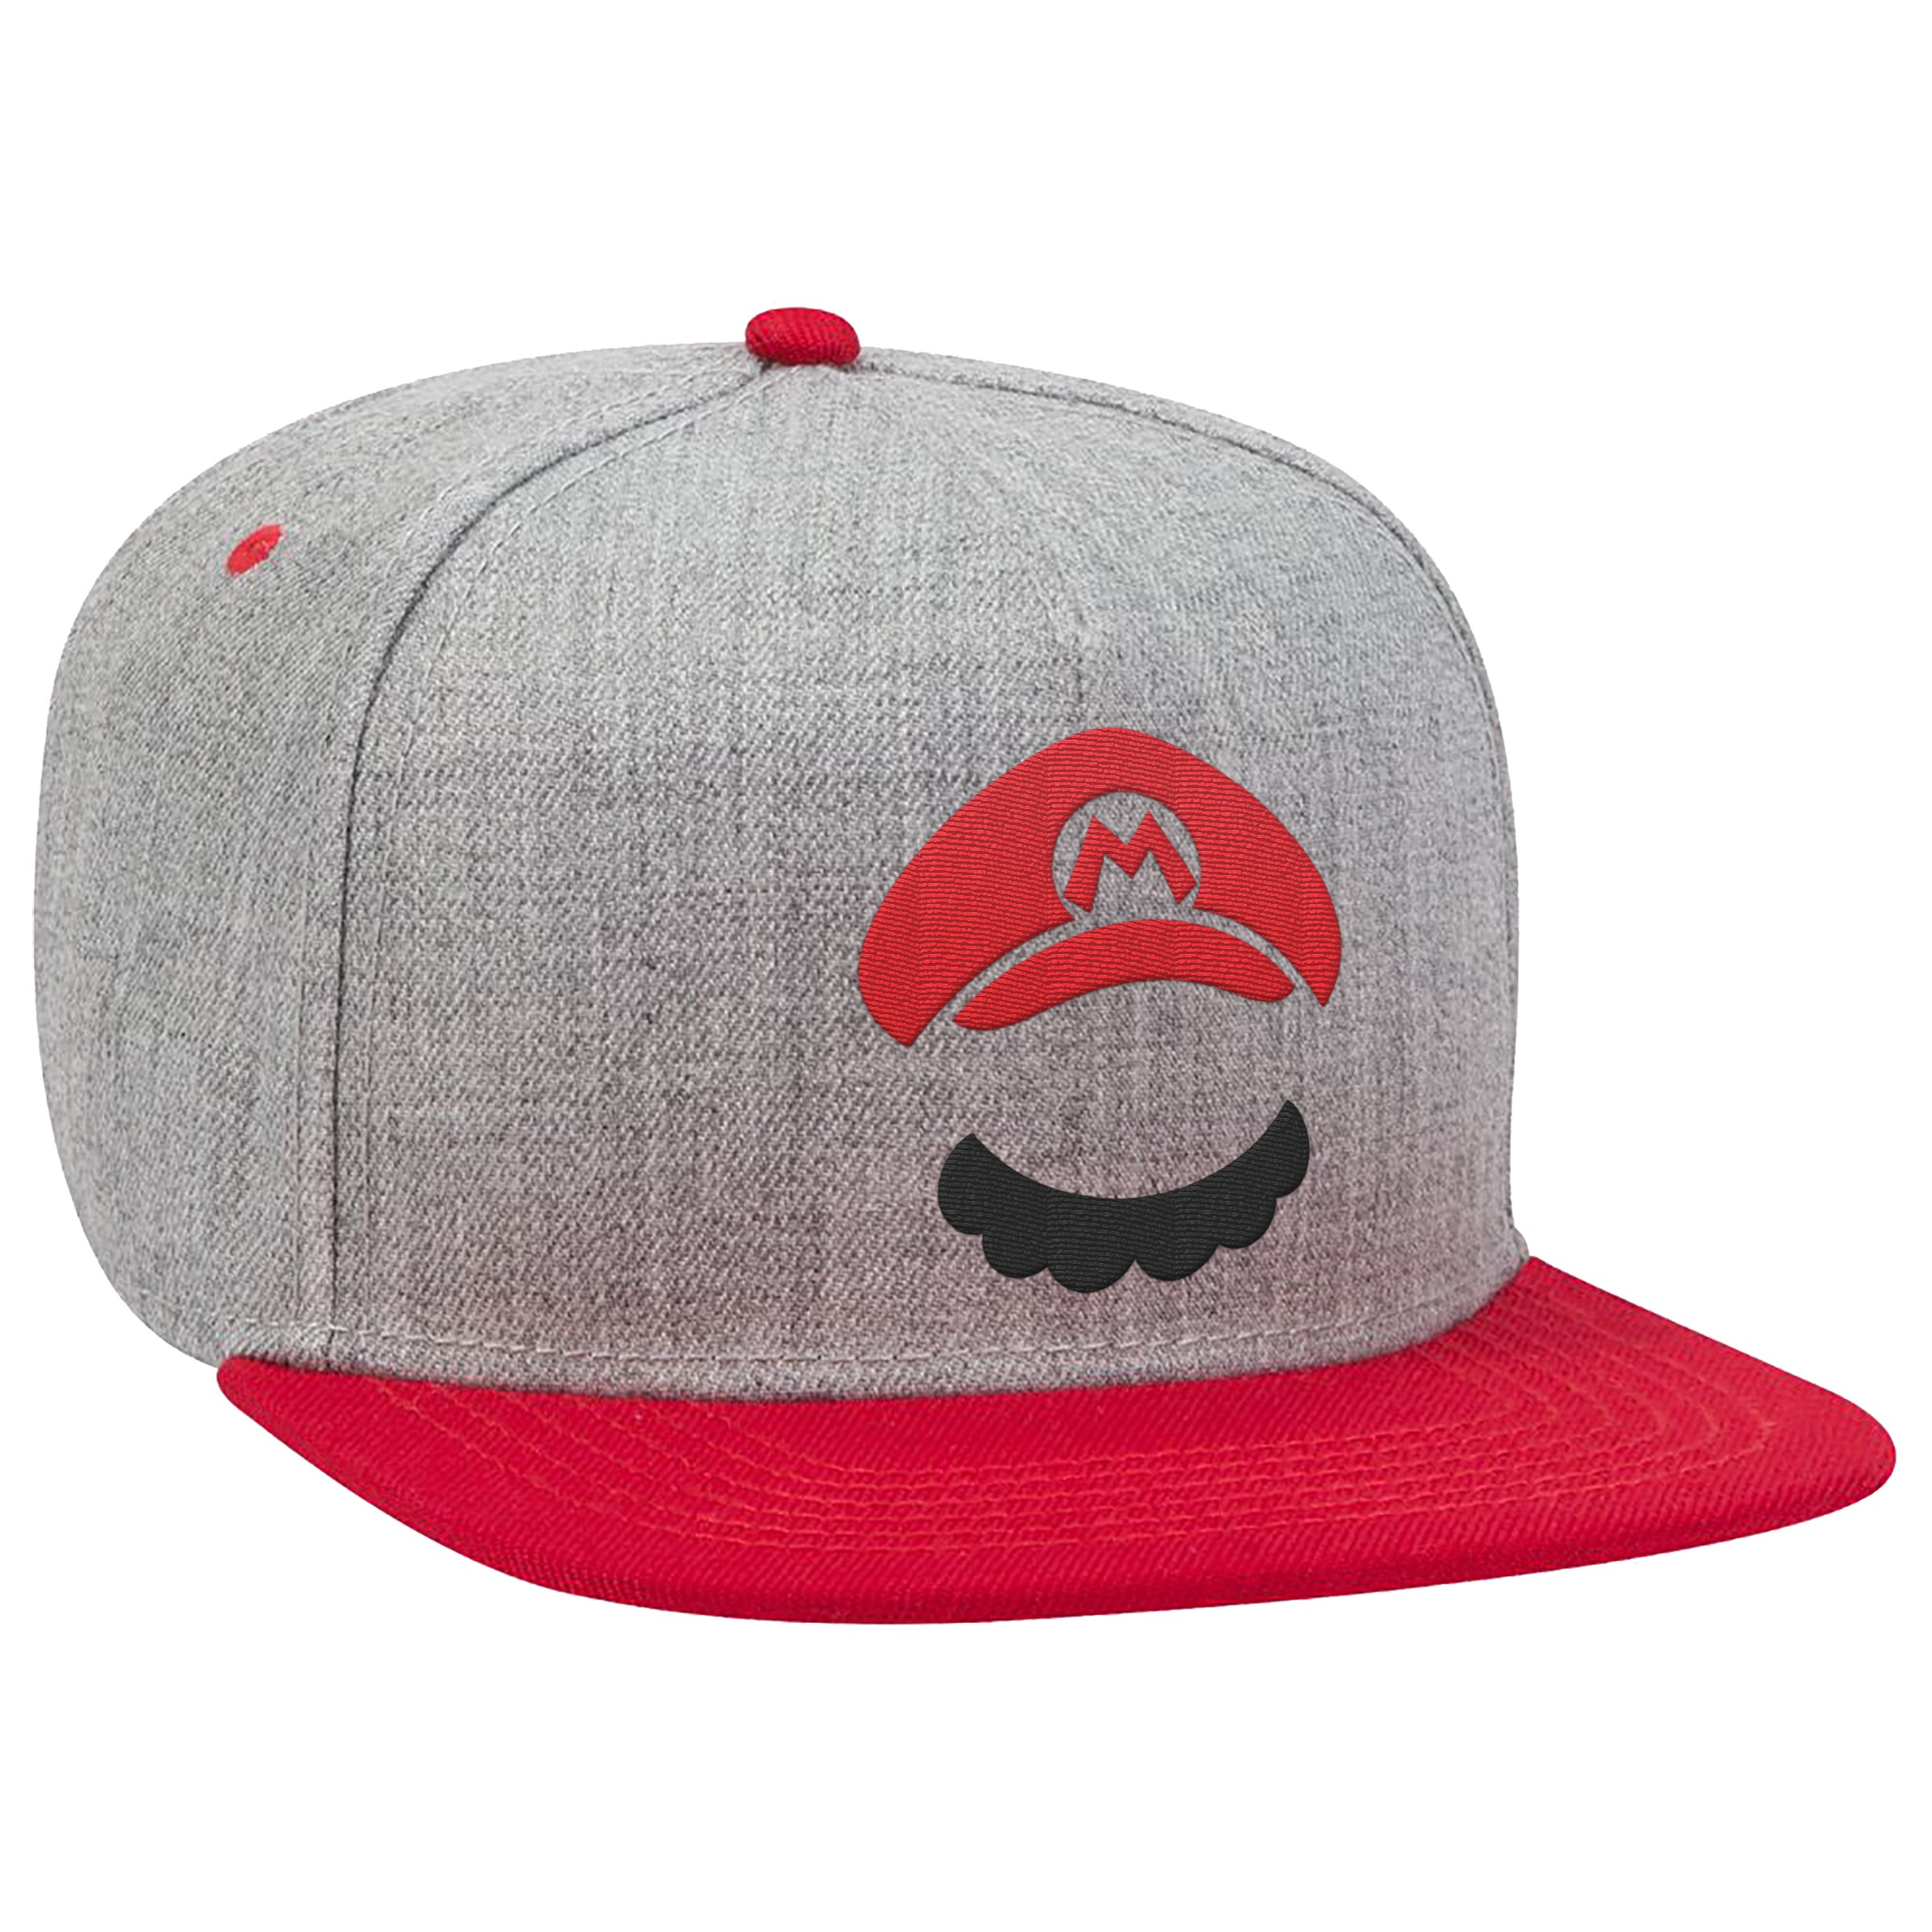 "Super Mario™ ""Mario Moustache"" Flat Bill Hat - Officially Licensed by Nintendo"